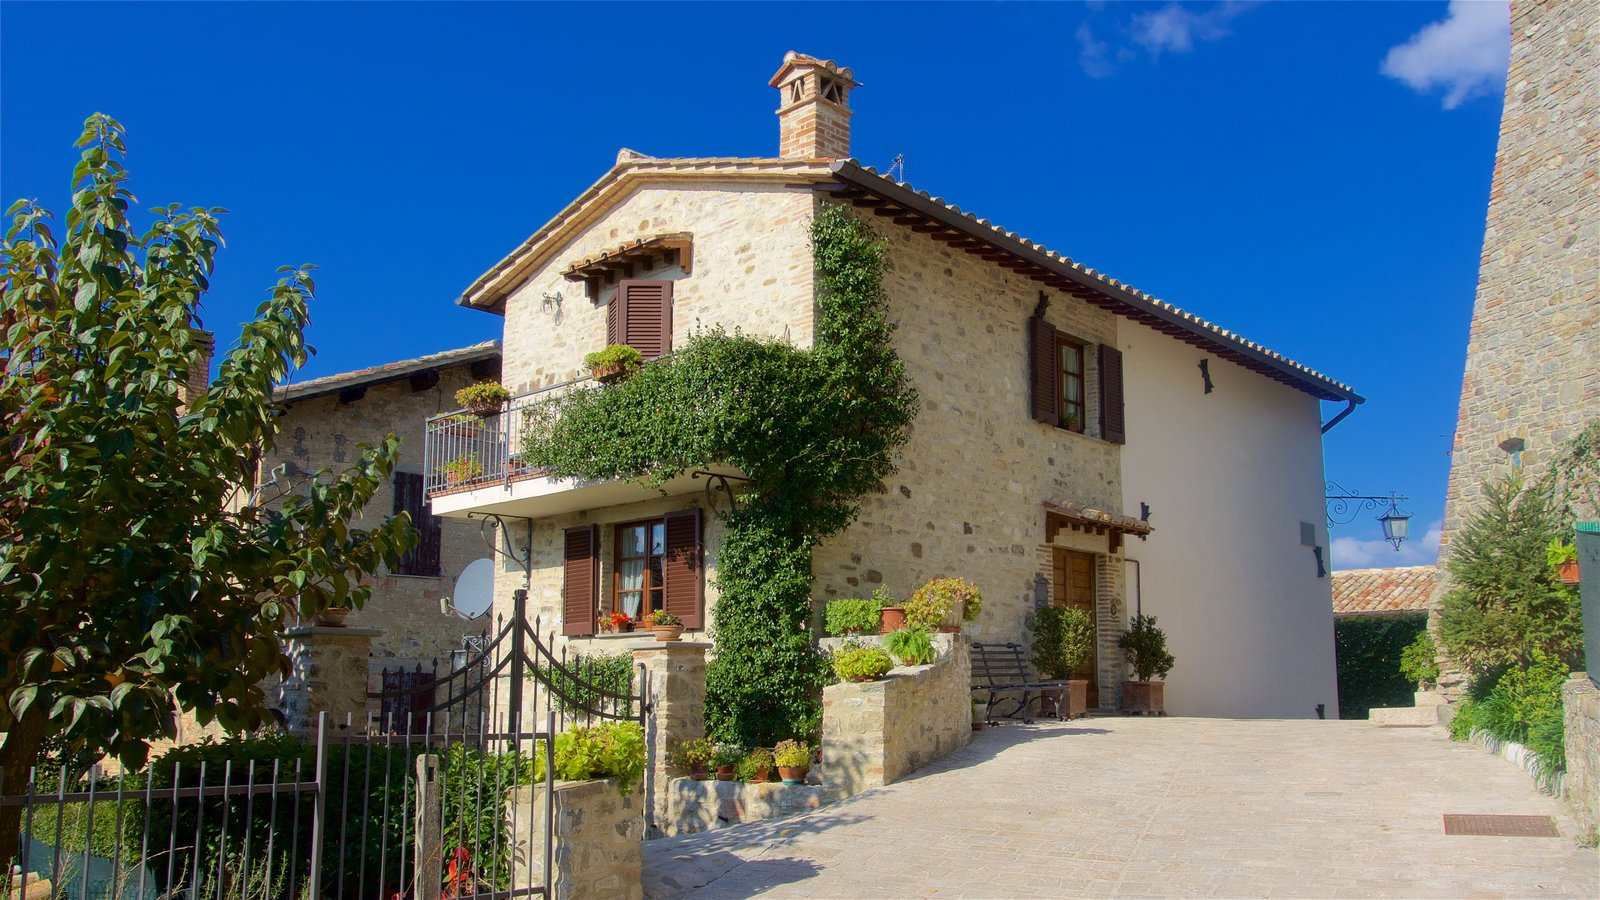 Montone showing a house